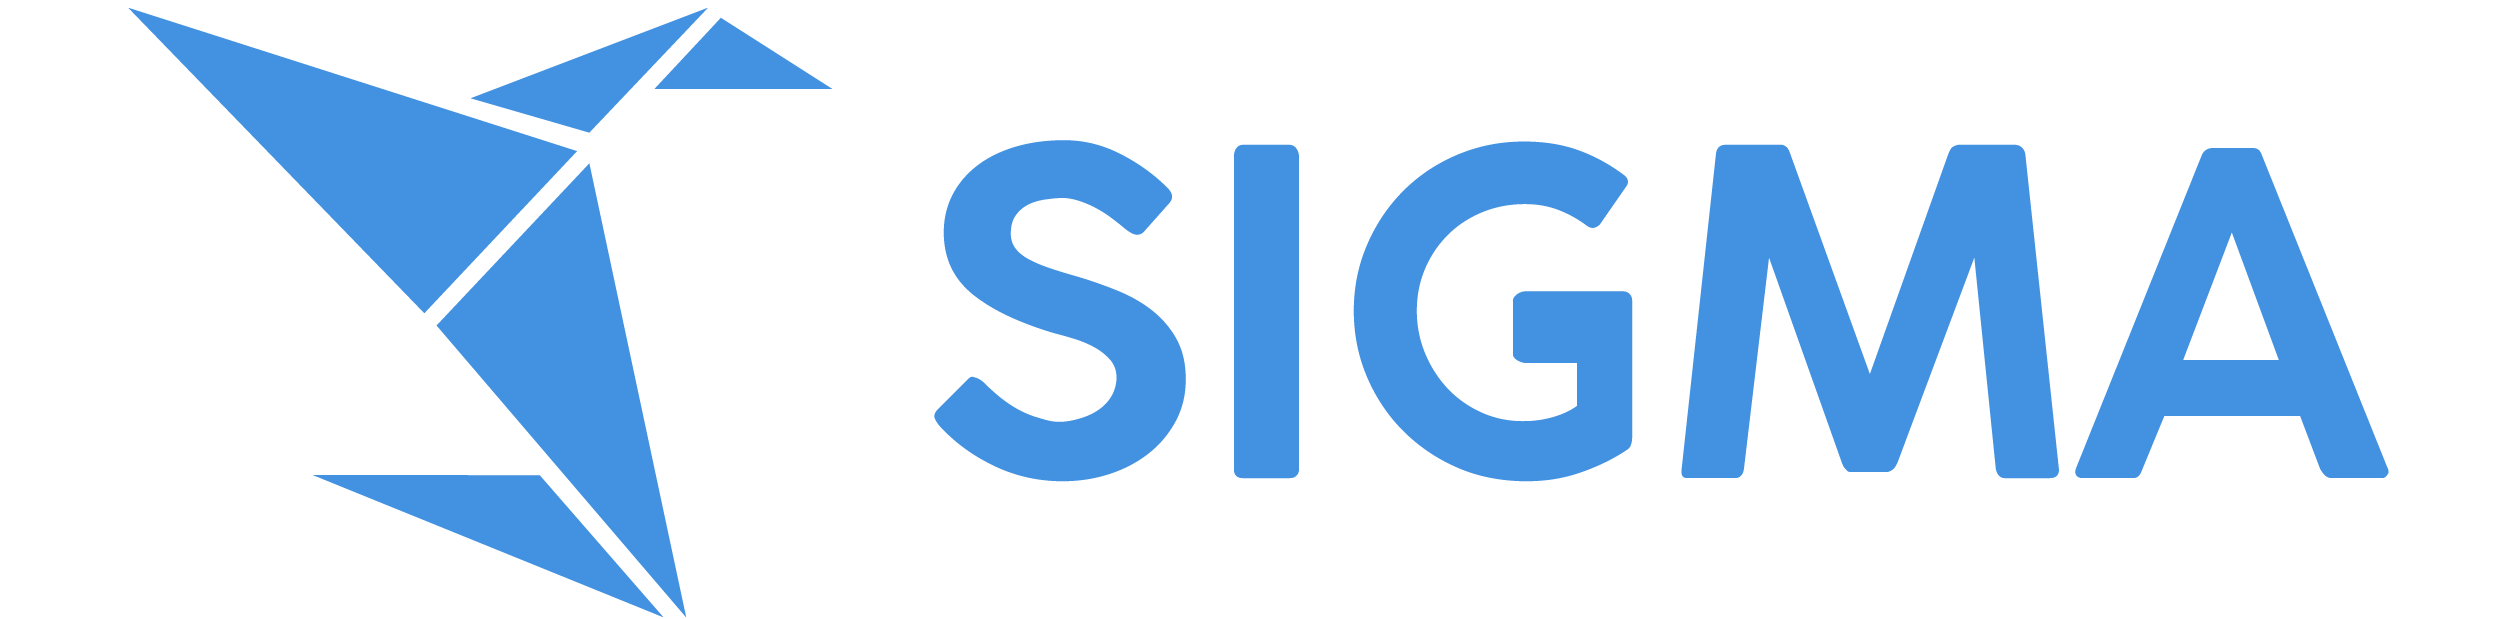 Function Index for Sigma Data Analysis Software - Sigma